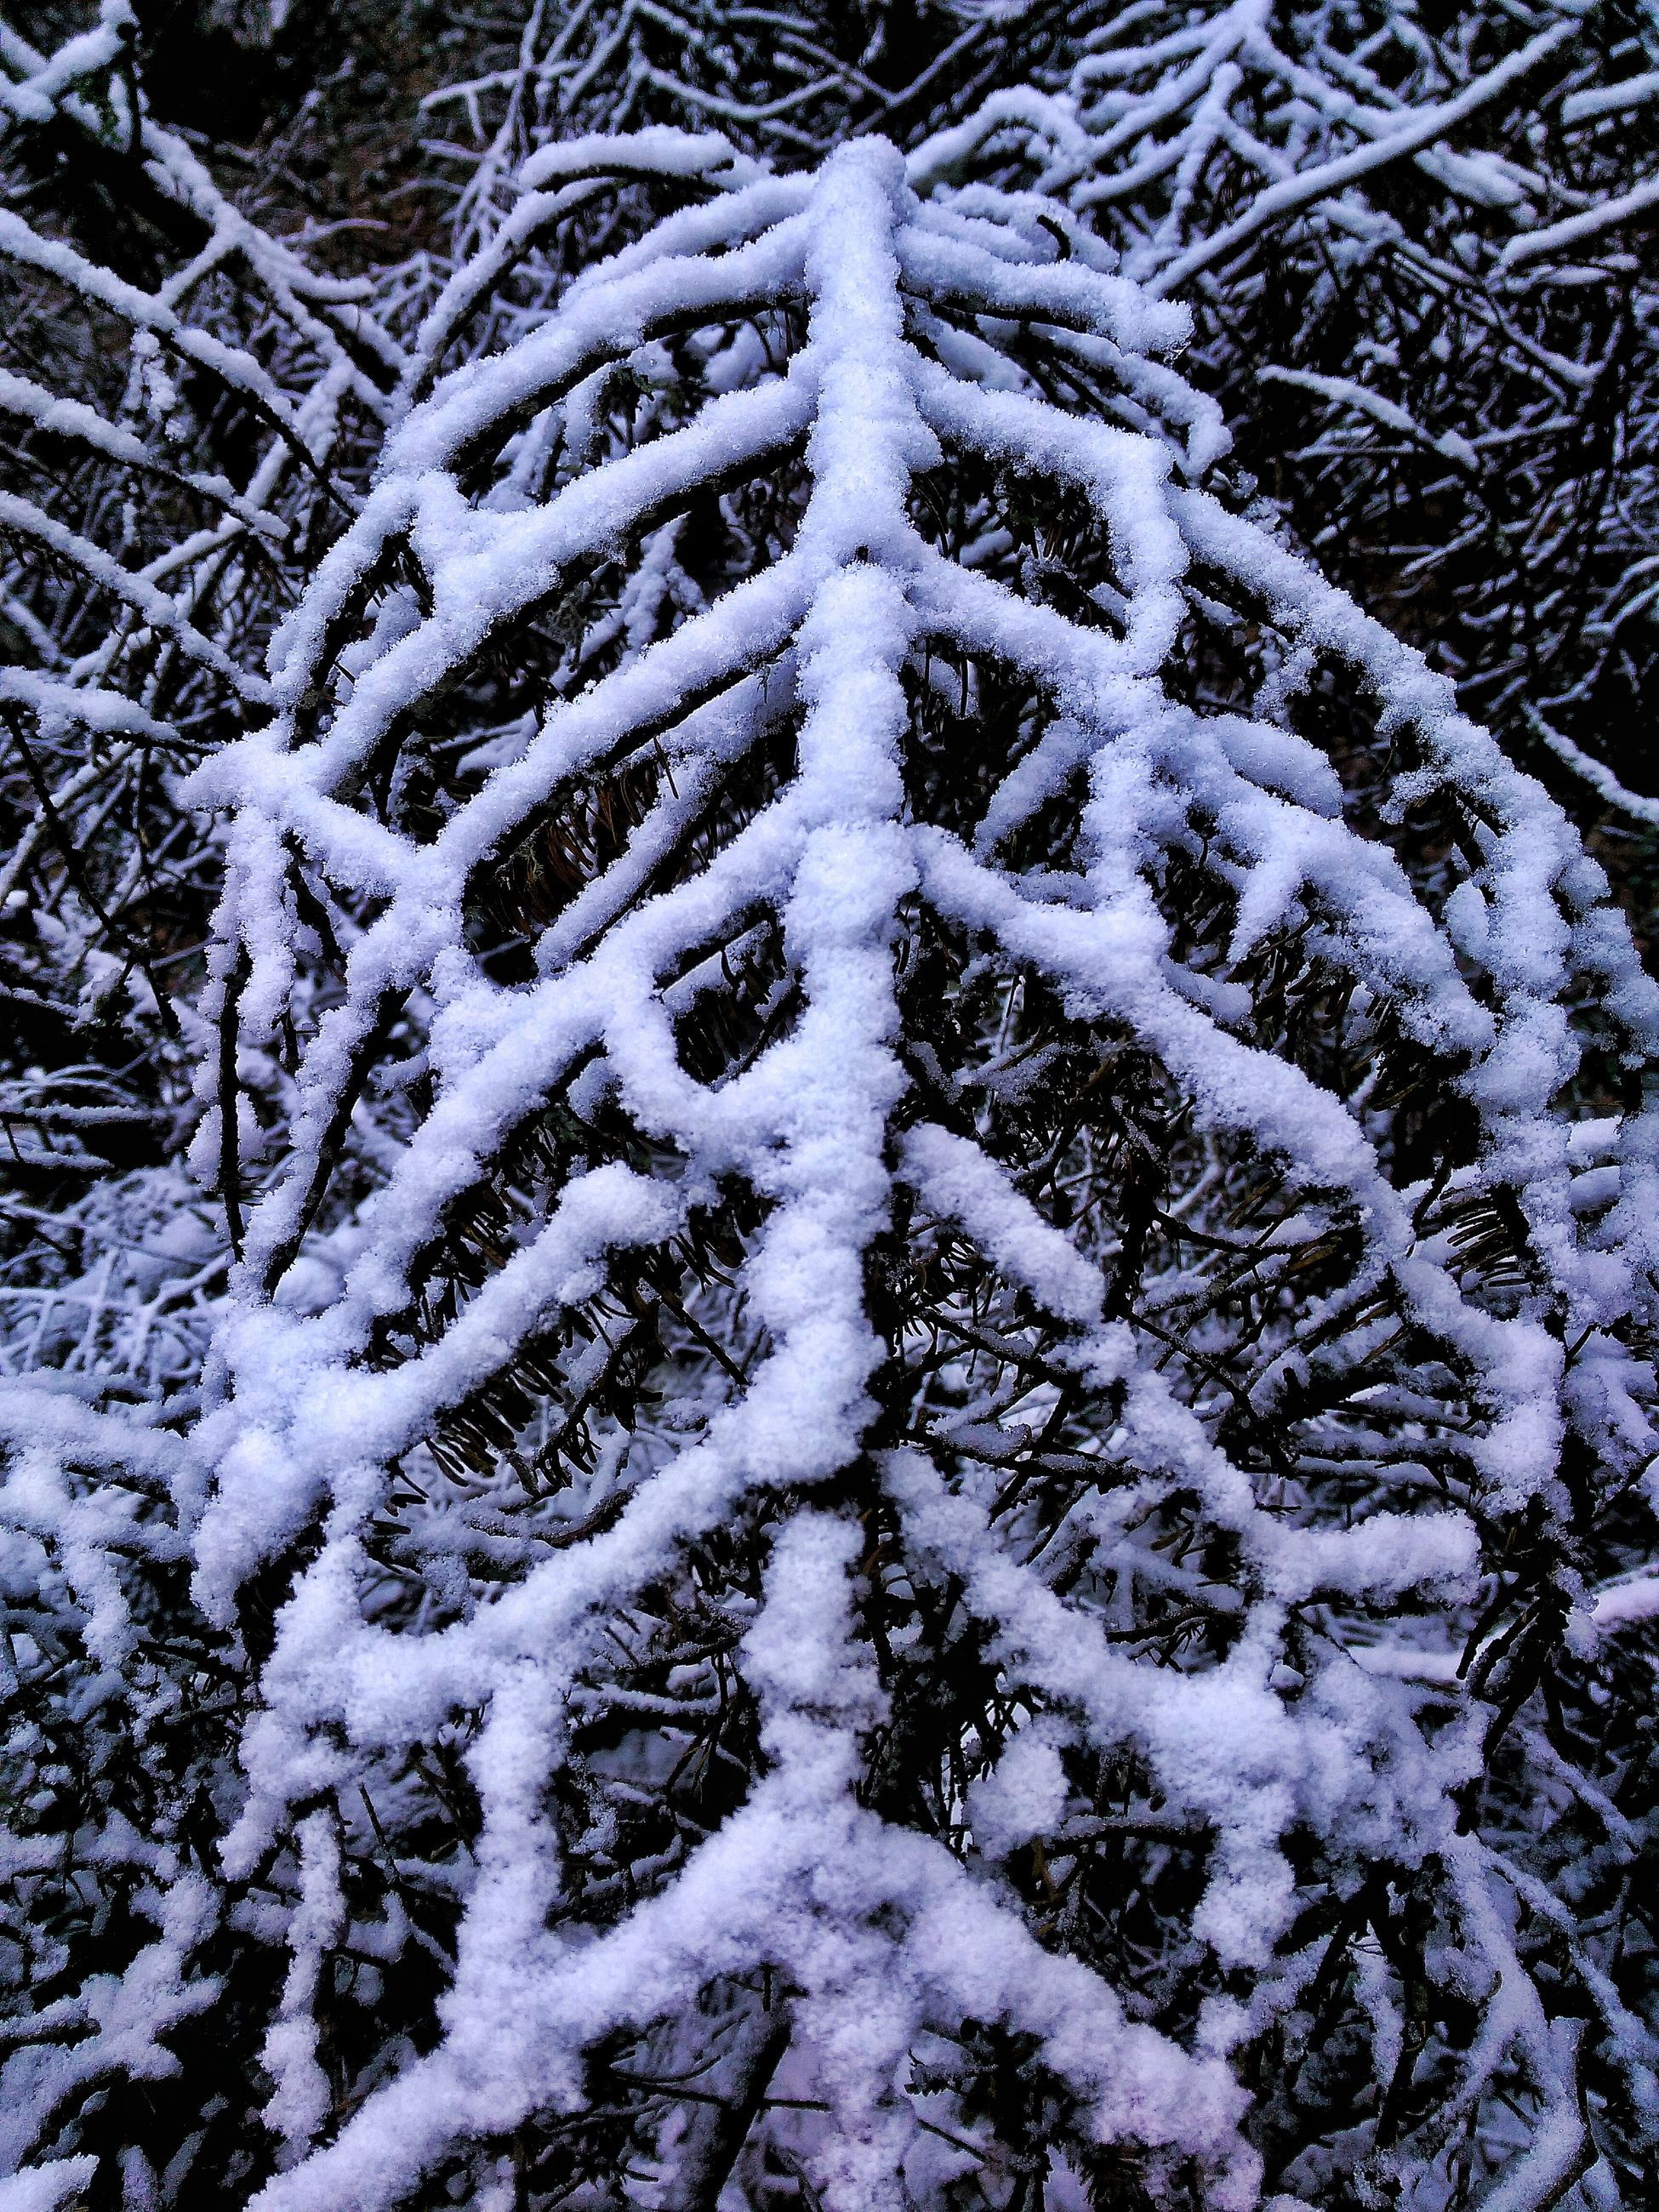 snow, winter, cold temperature, season, weather, covering, frozen, tree, bare tree, nature, white color, branch, covered, tranquility, beauty in nature, day, outdoors, forest, no people, growth